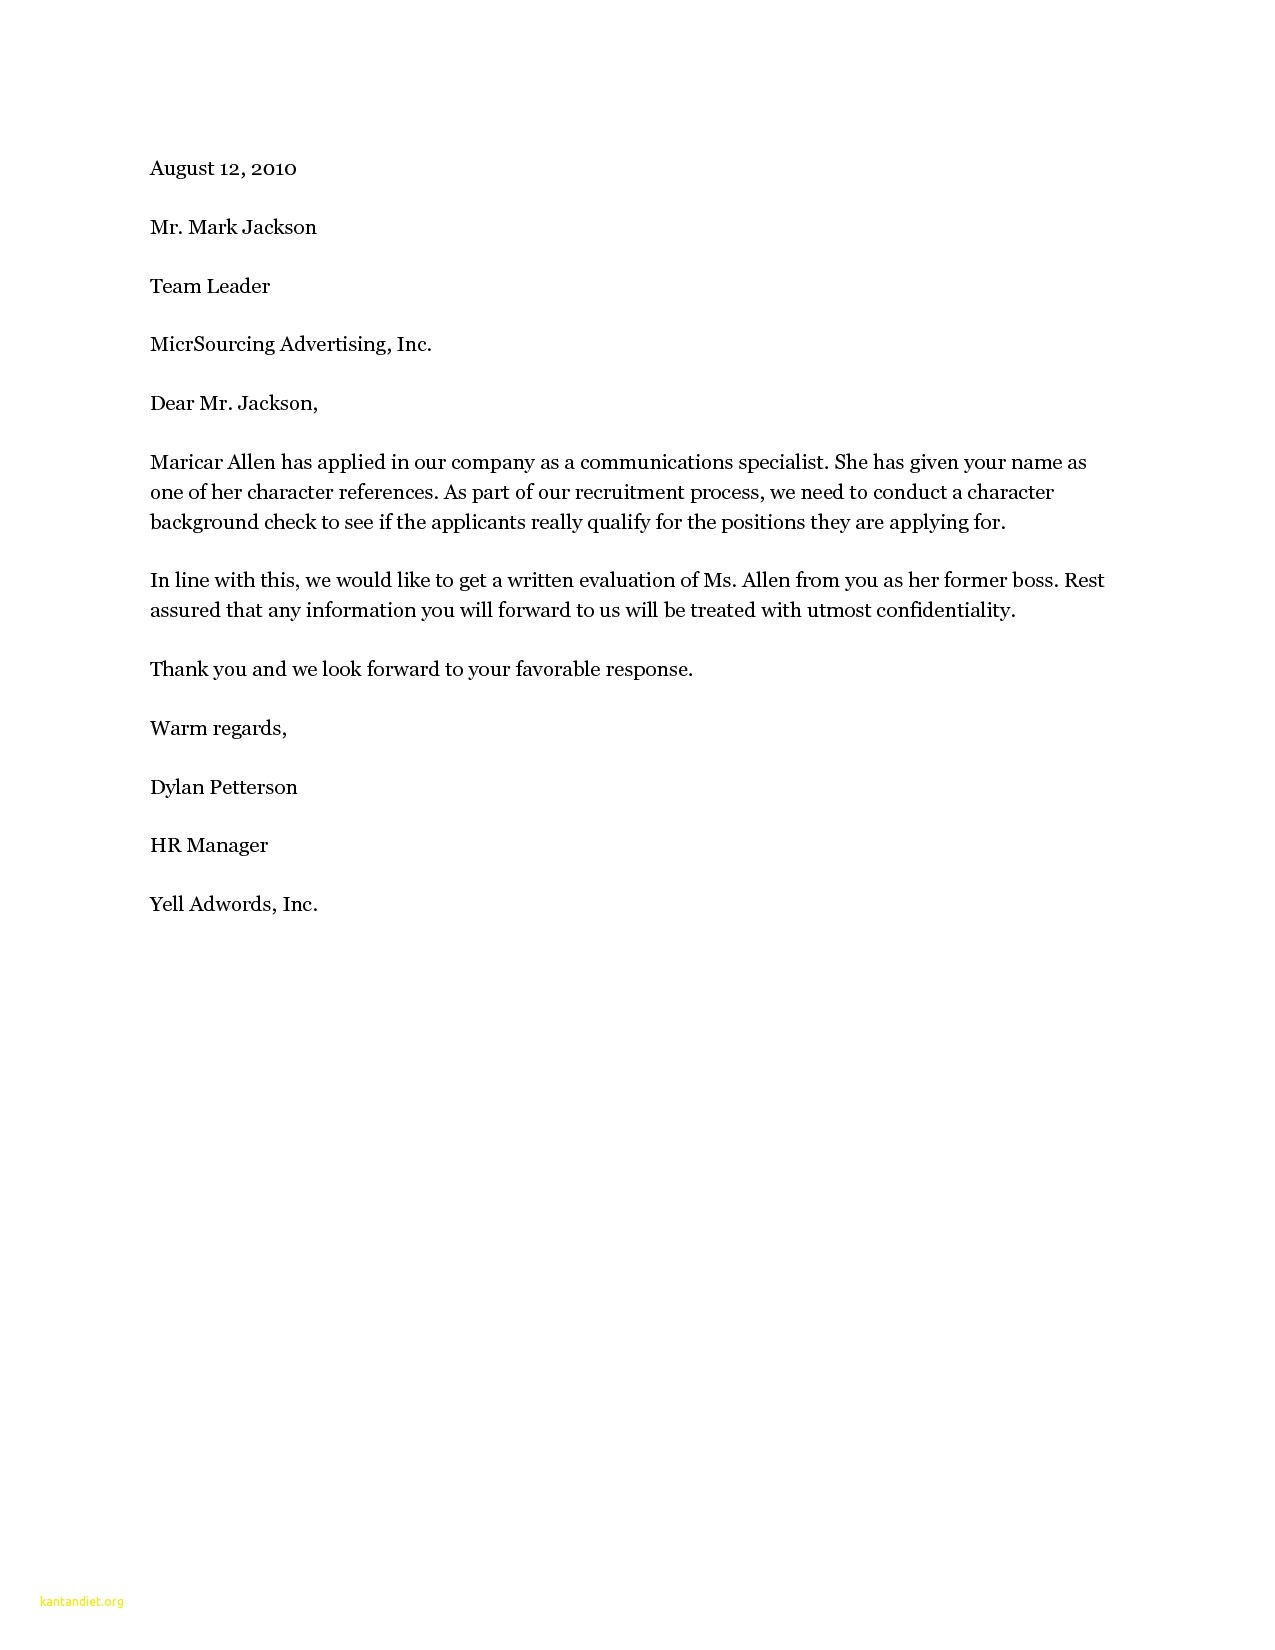 Personal Reference Letter Template - Dear Hiring Manager Cover Letter Sample 19 Cover Letter Template